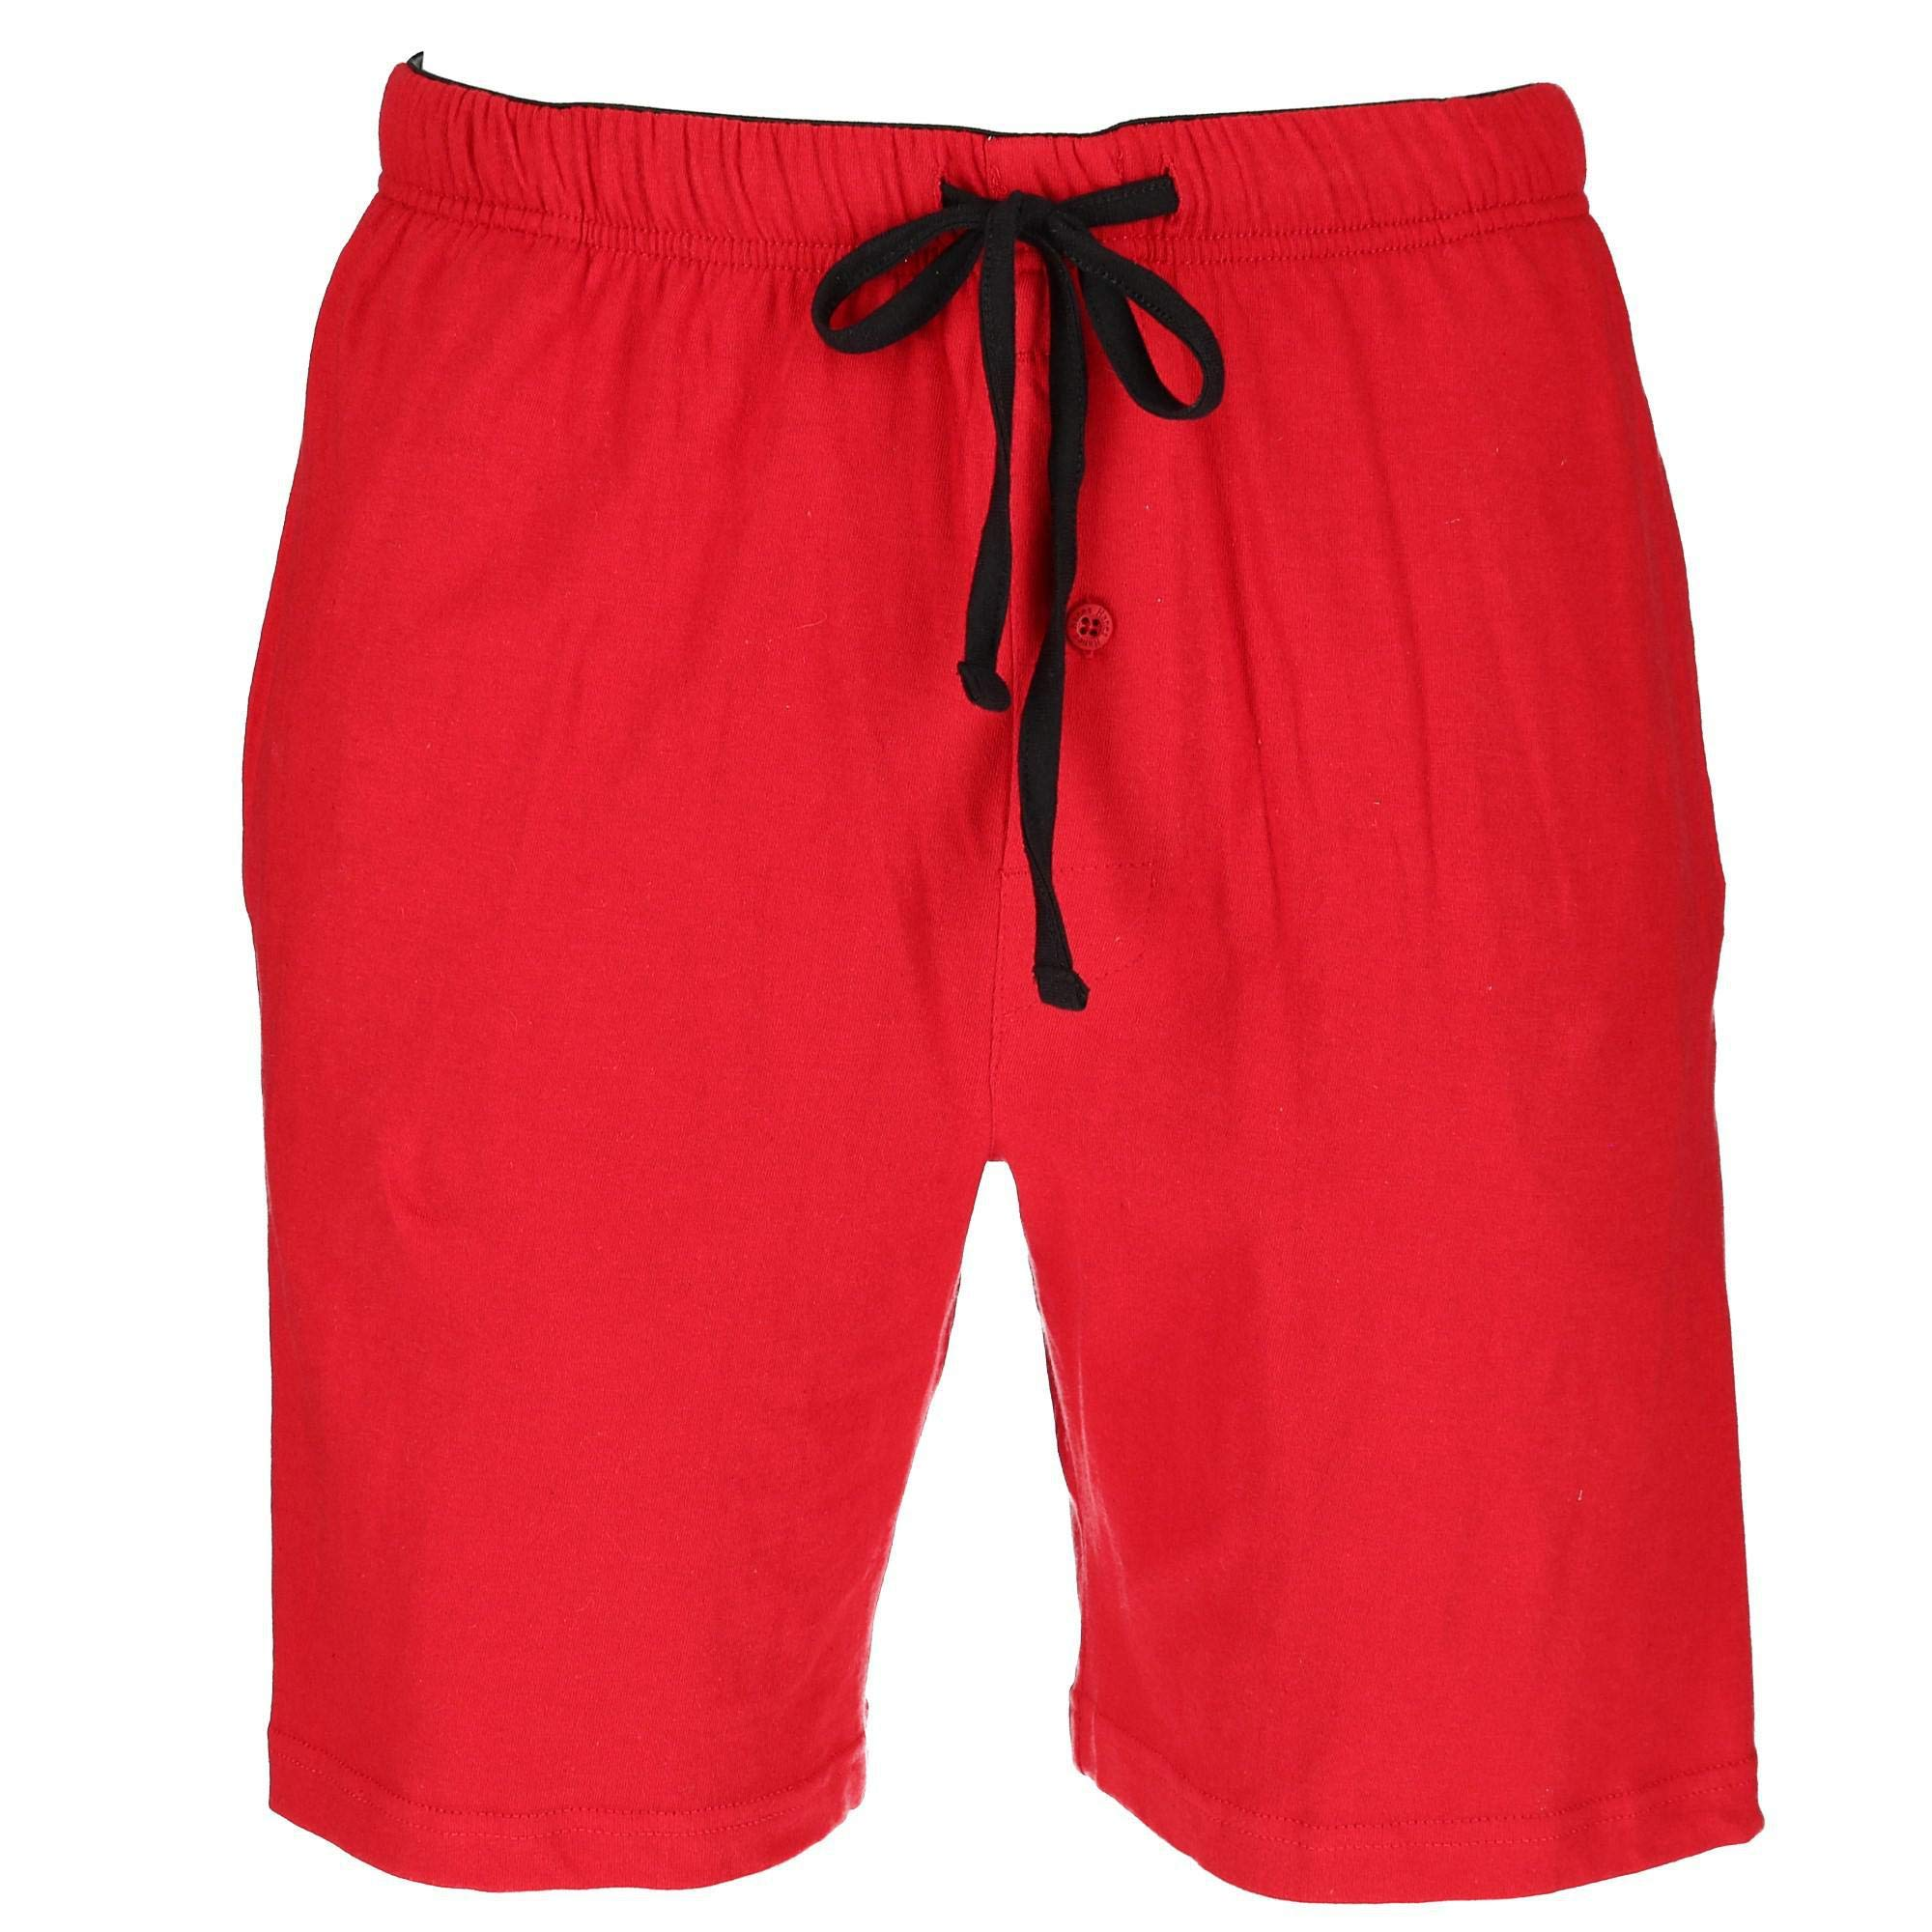 Hanes Men's Jersey Knit Cotton Button Fly Pajama Sleep Shorts, XL, Red by Hanes